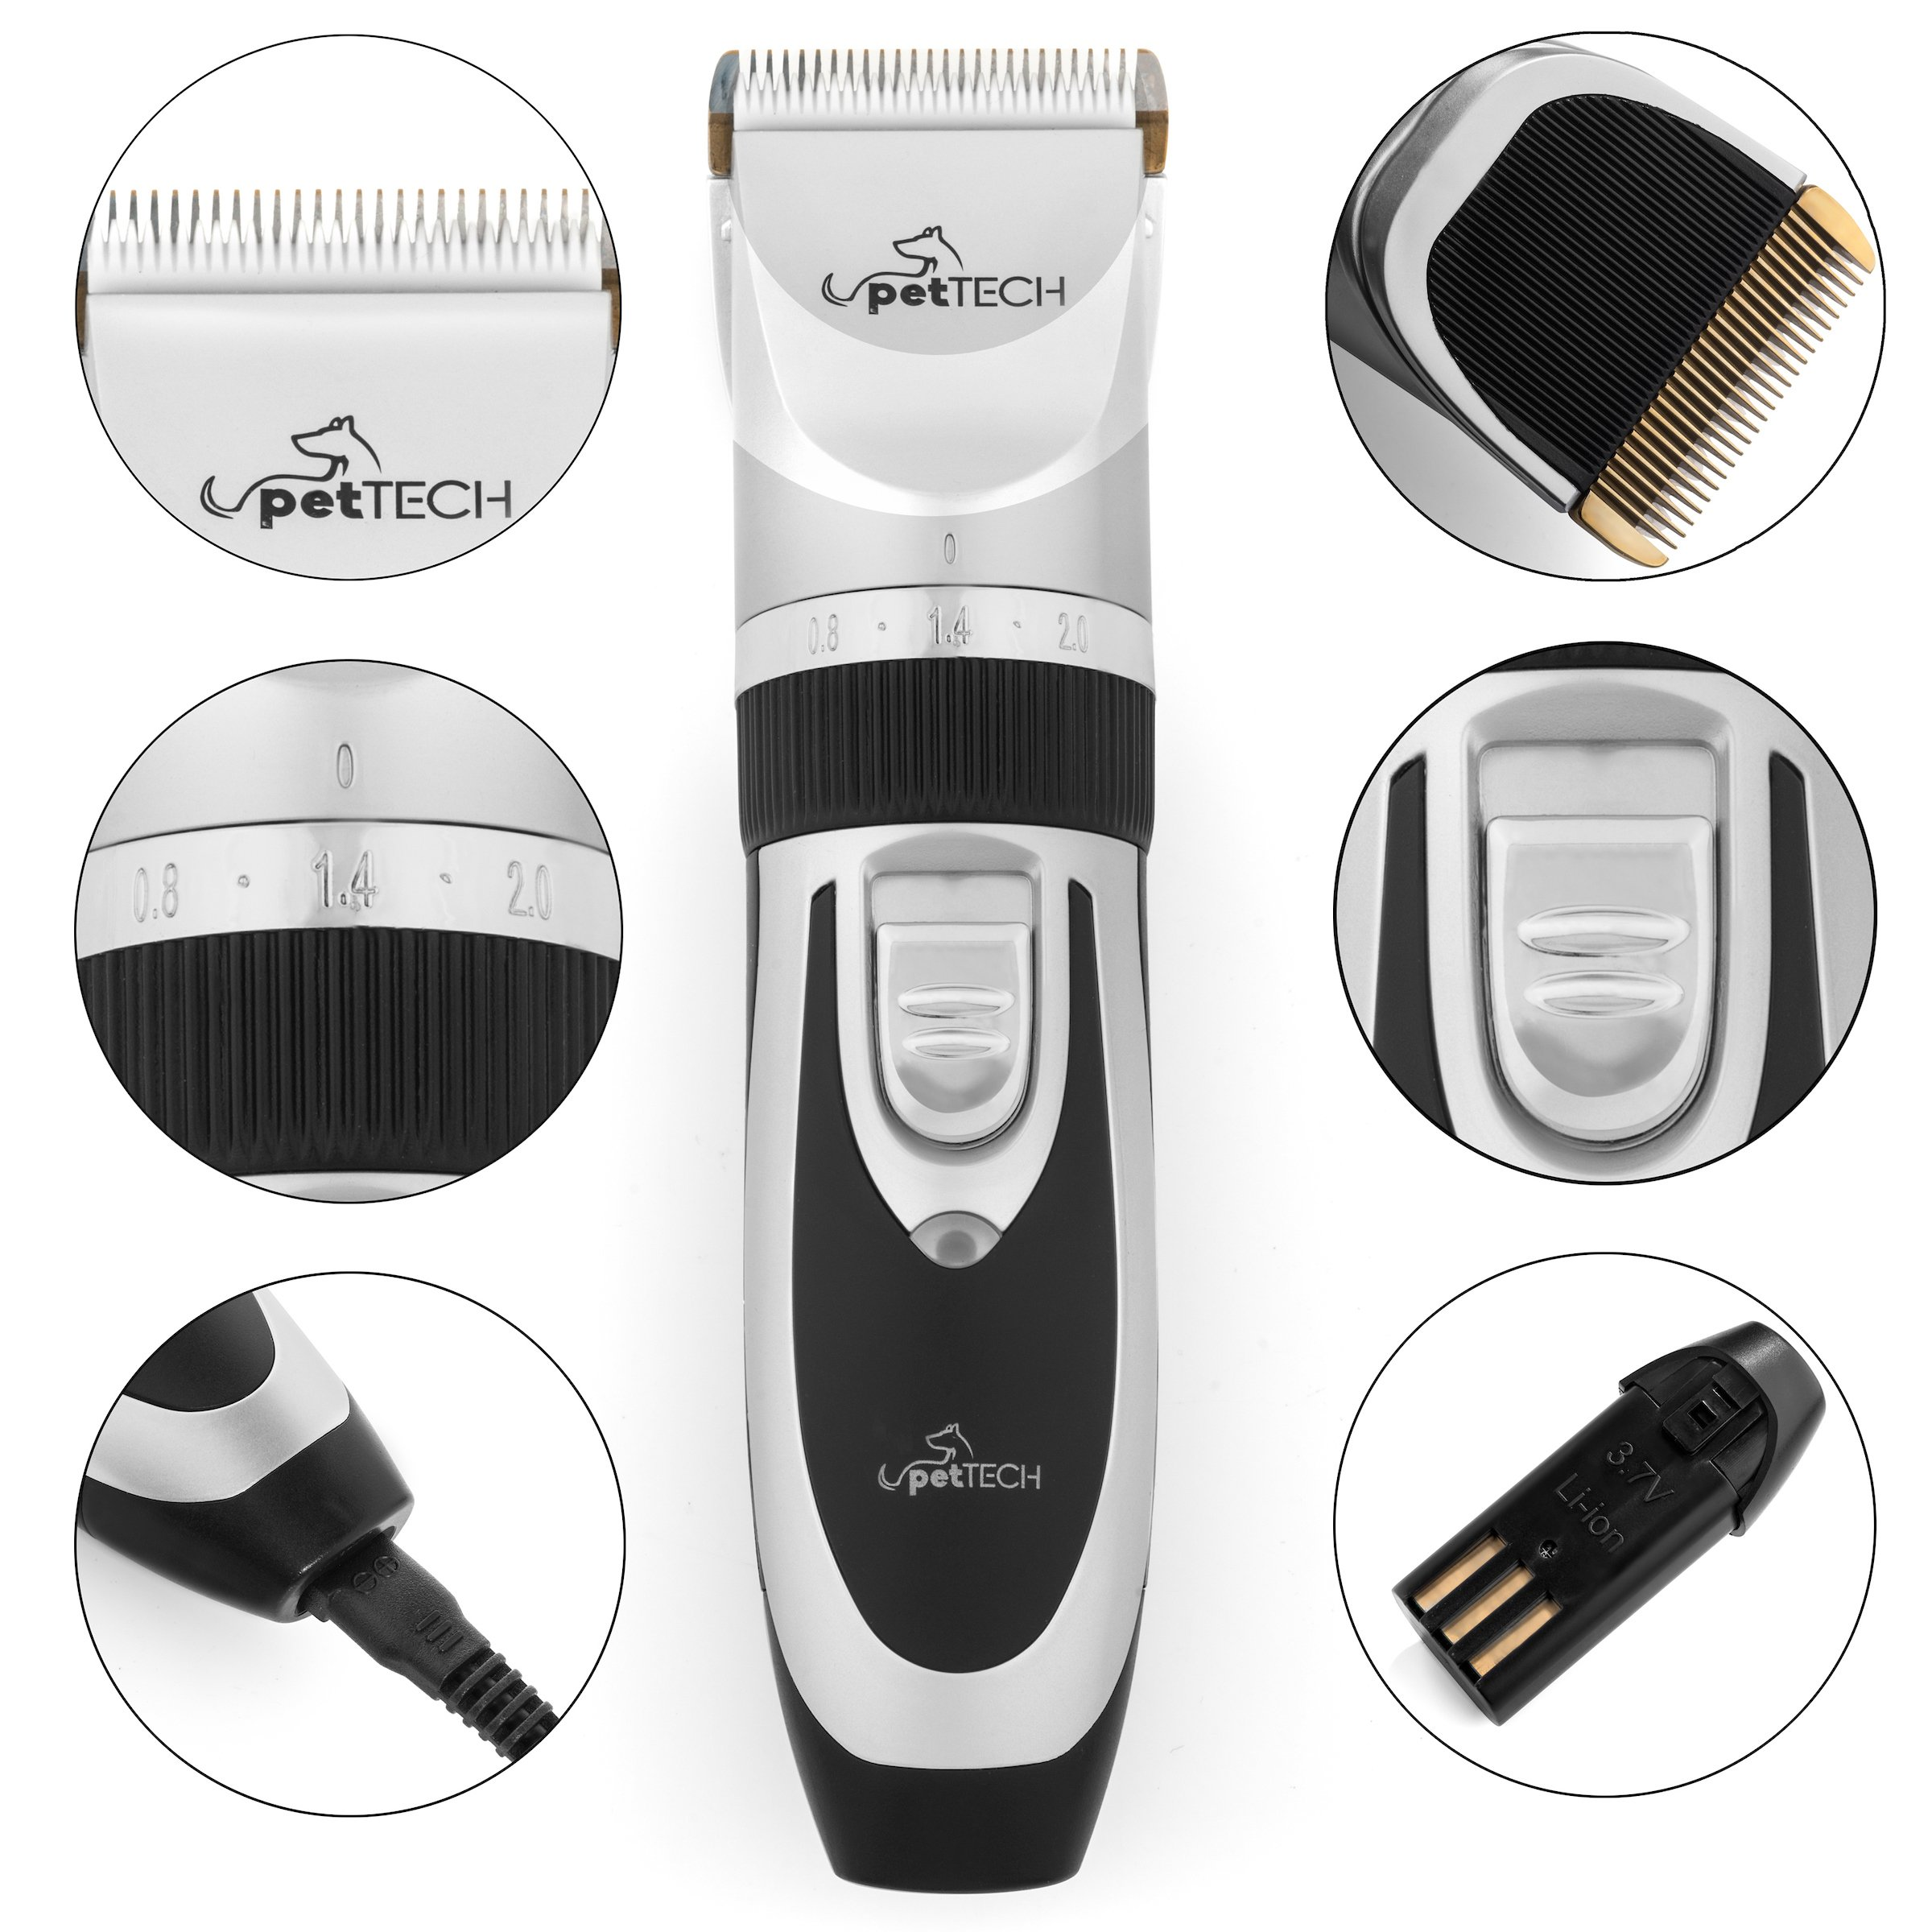 PetTech Professional Dog Grooming Kit - Rechargeable, Cordless Pet Grooming Clippers & Complete Set of Dog Grooming Tools. Low Noise & Suitable for Dogs, Cats and Other Pets by PetTech (Image #6)